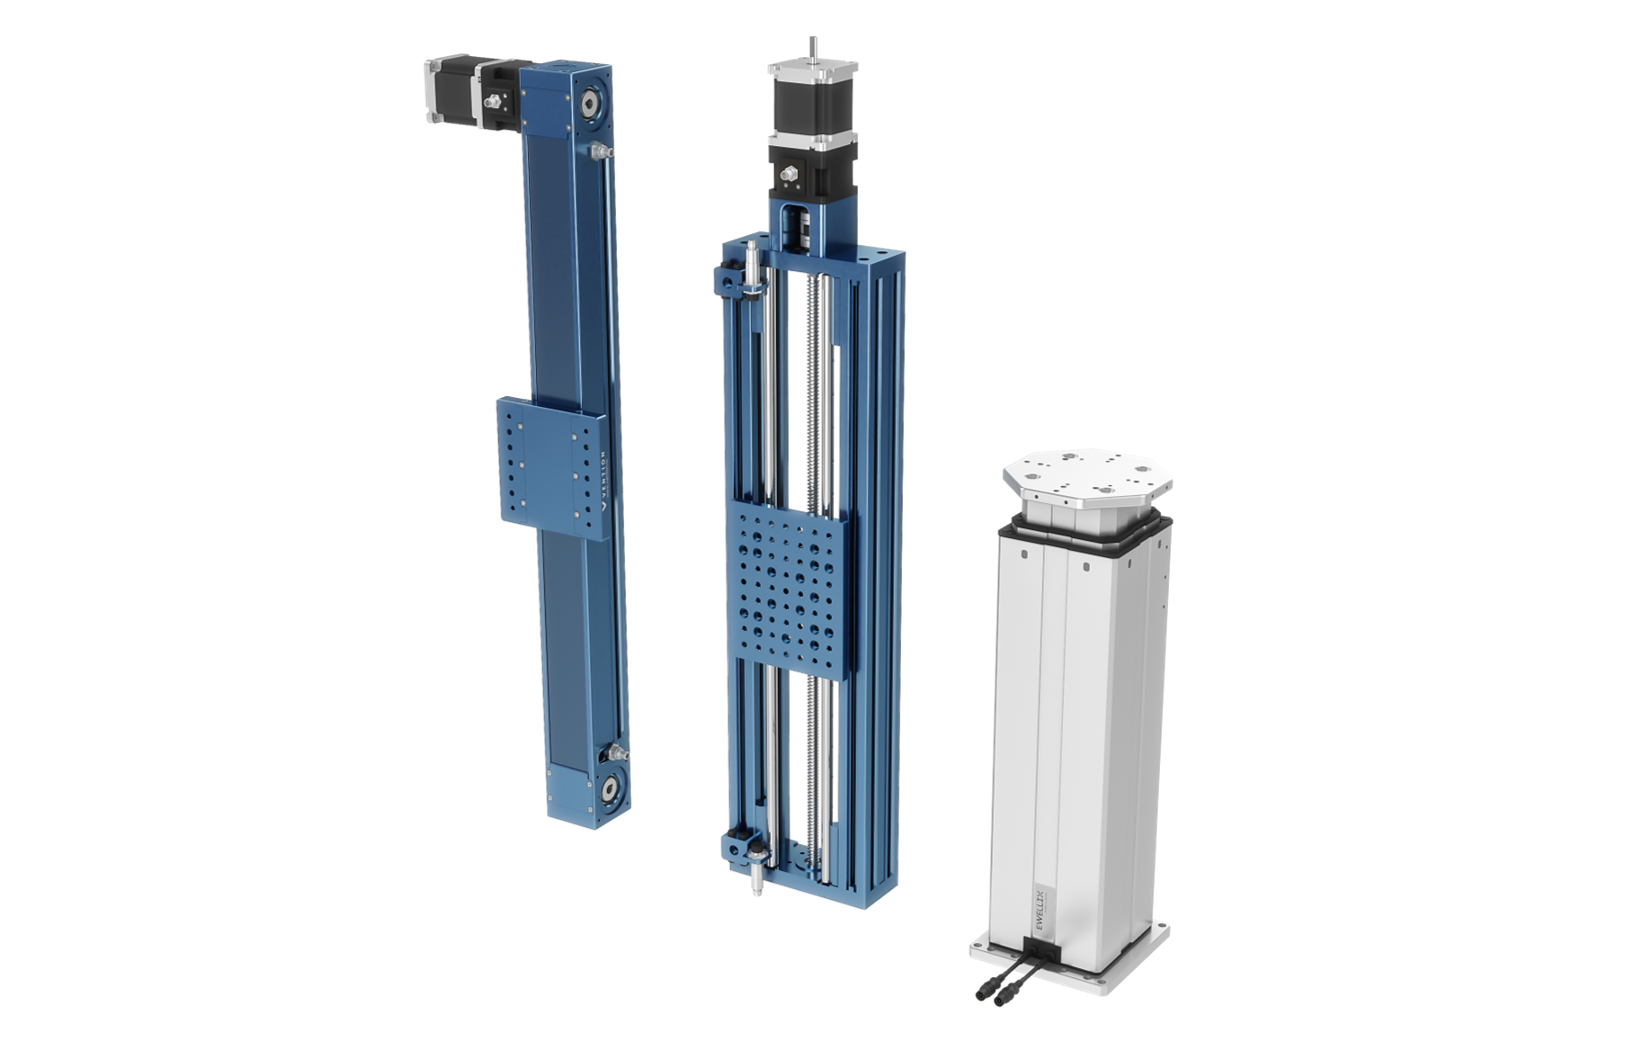 Selecting a lift column or vertical actuator